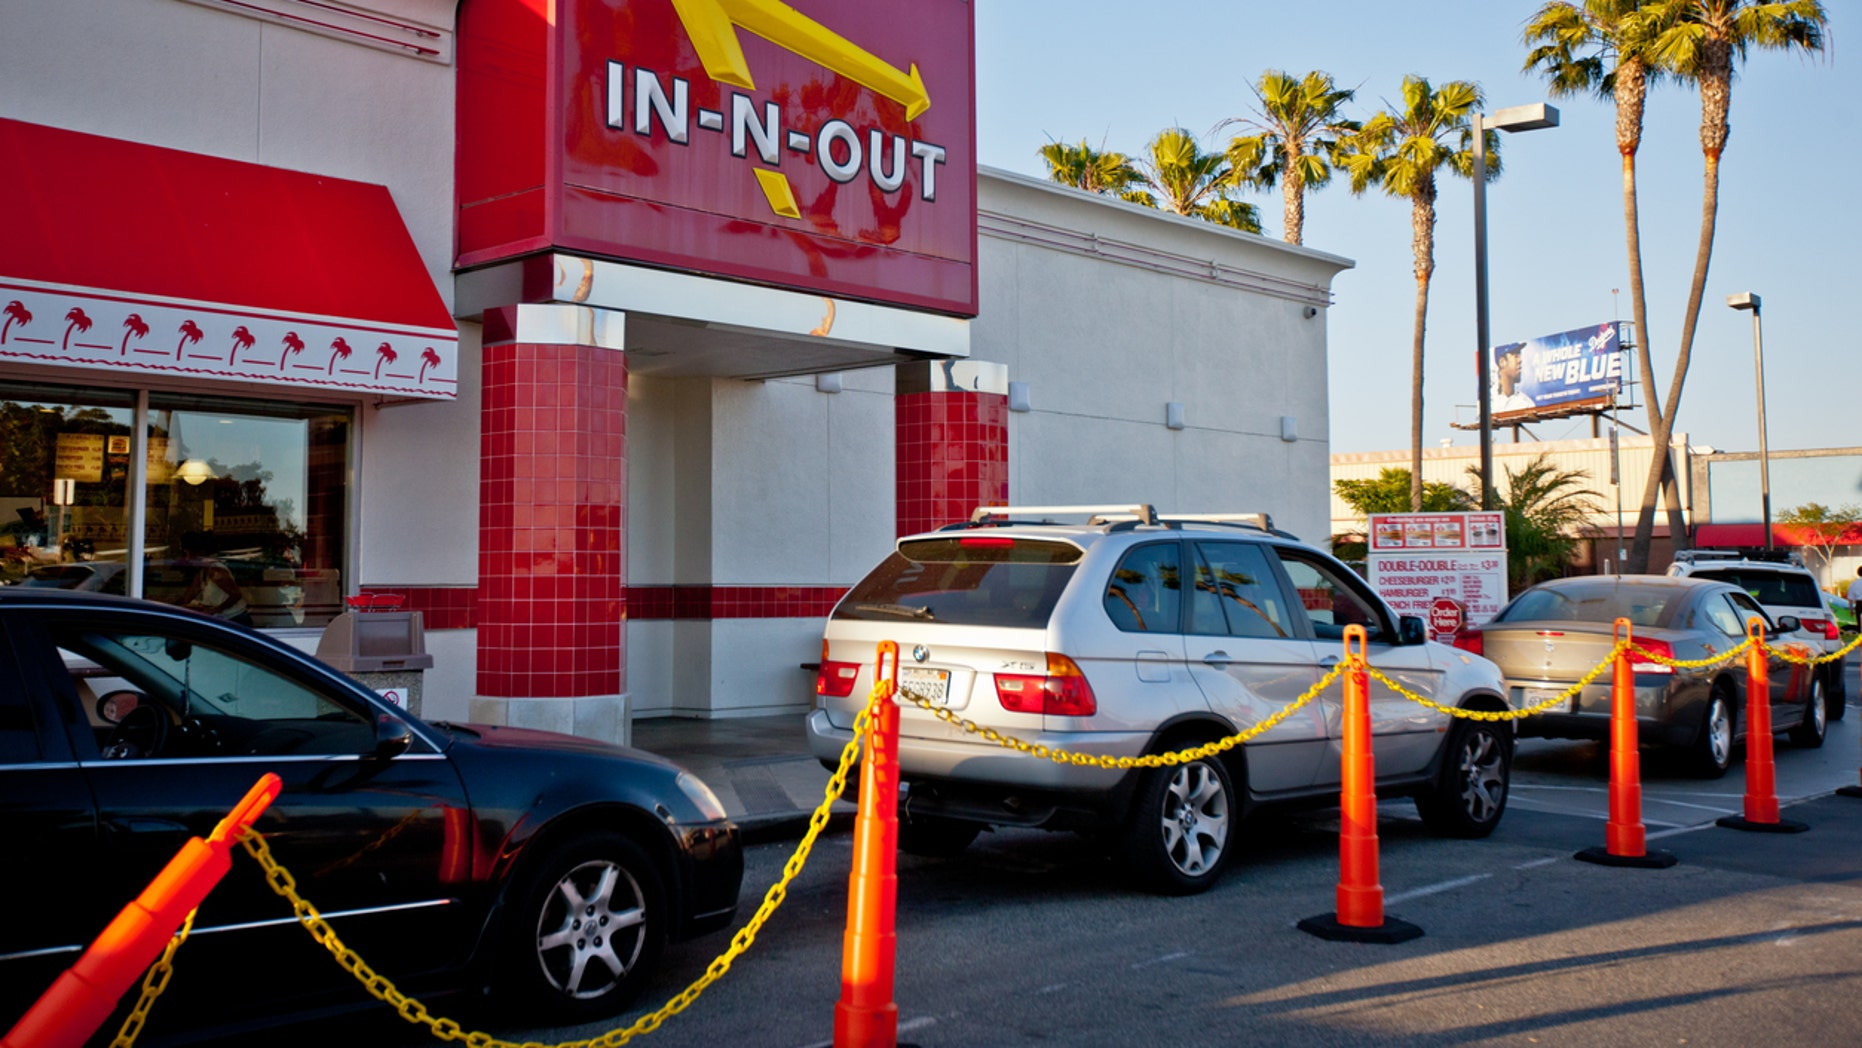 In-N-Out Burger reveals managers make $160k on average | Fox